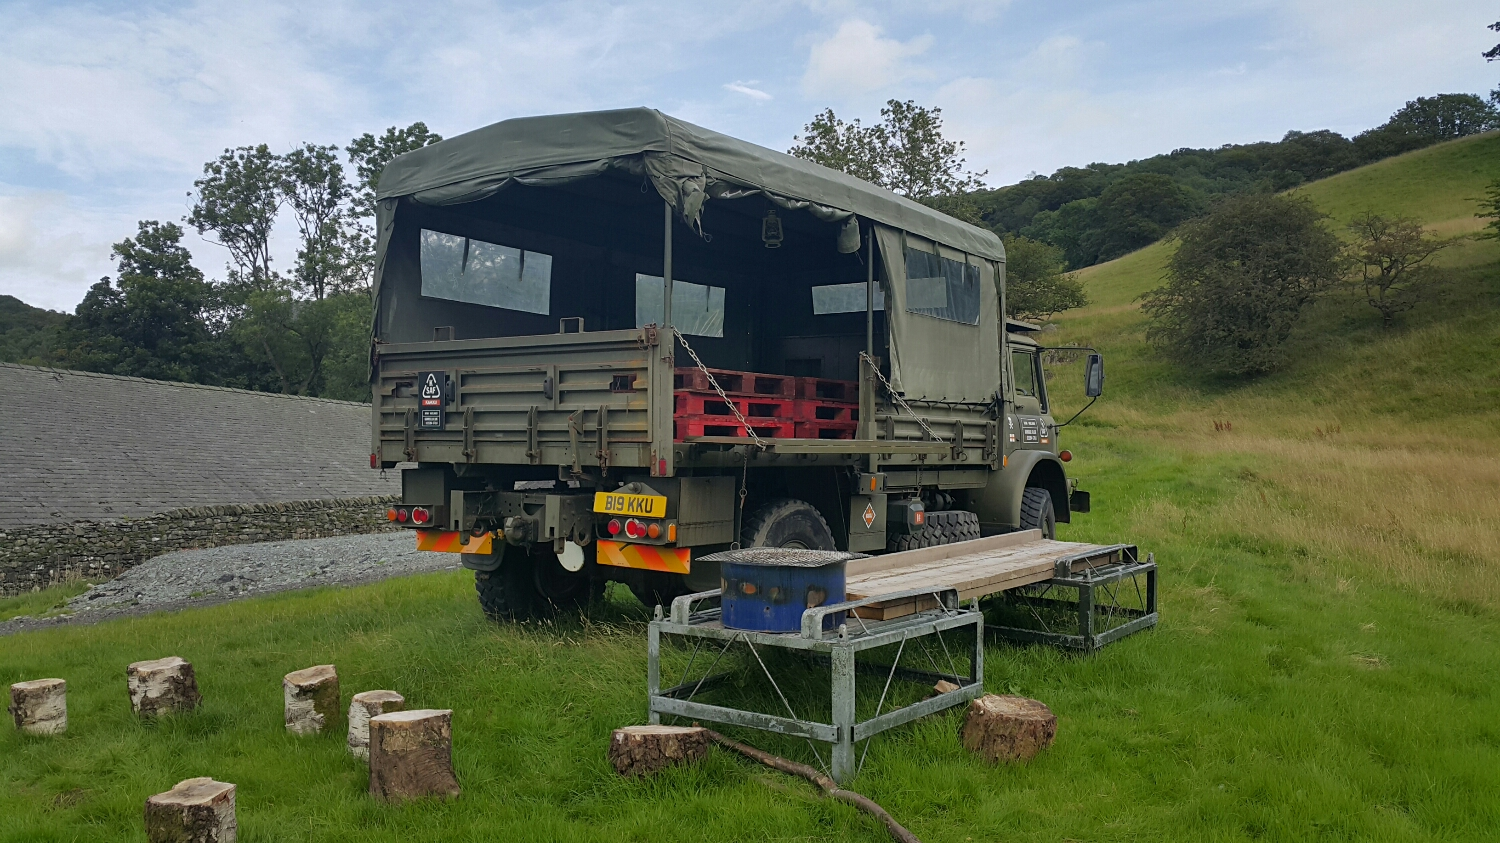 This is one of the camping spots on the Farm. Lucky for us the weather turned and we ended up inside In one of the luxurious lodges.